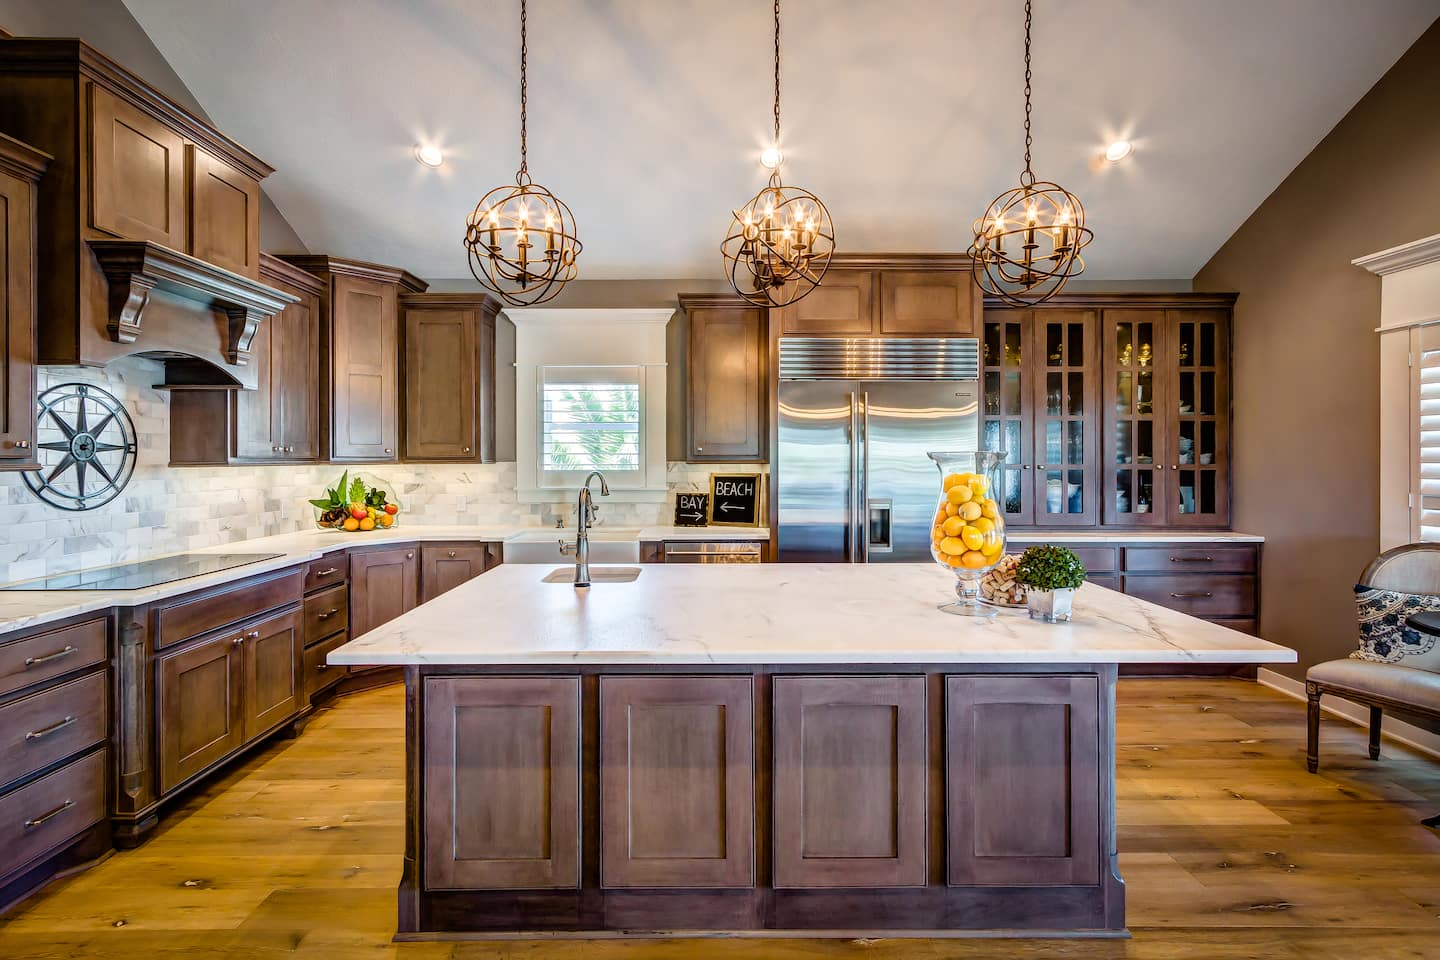 7 Kitchen Remodeling Design Trends and